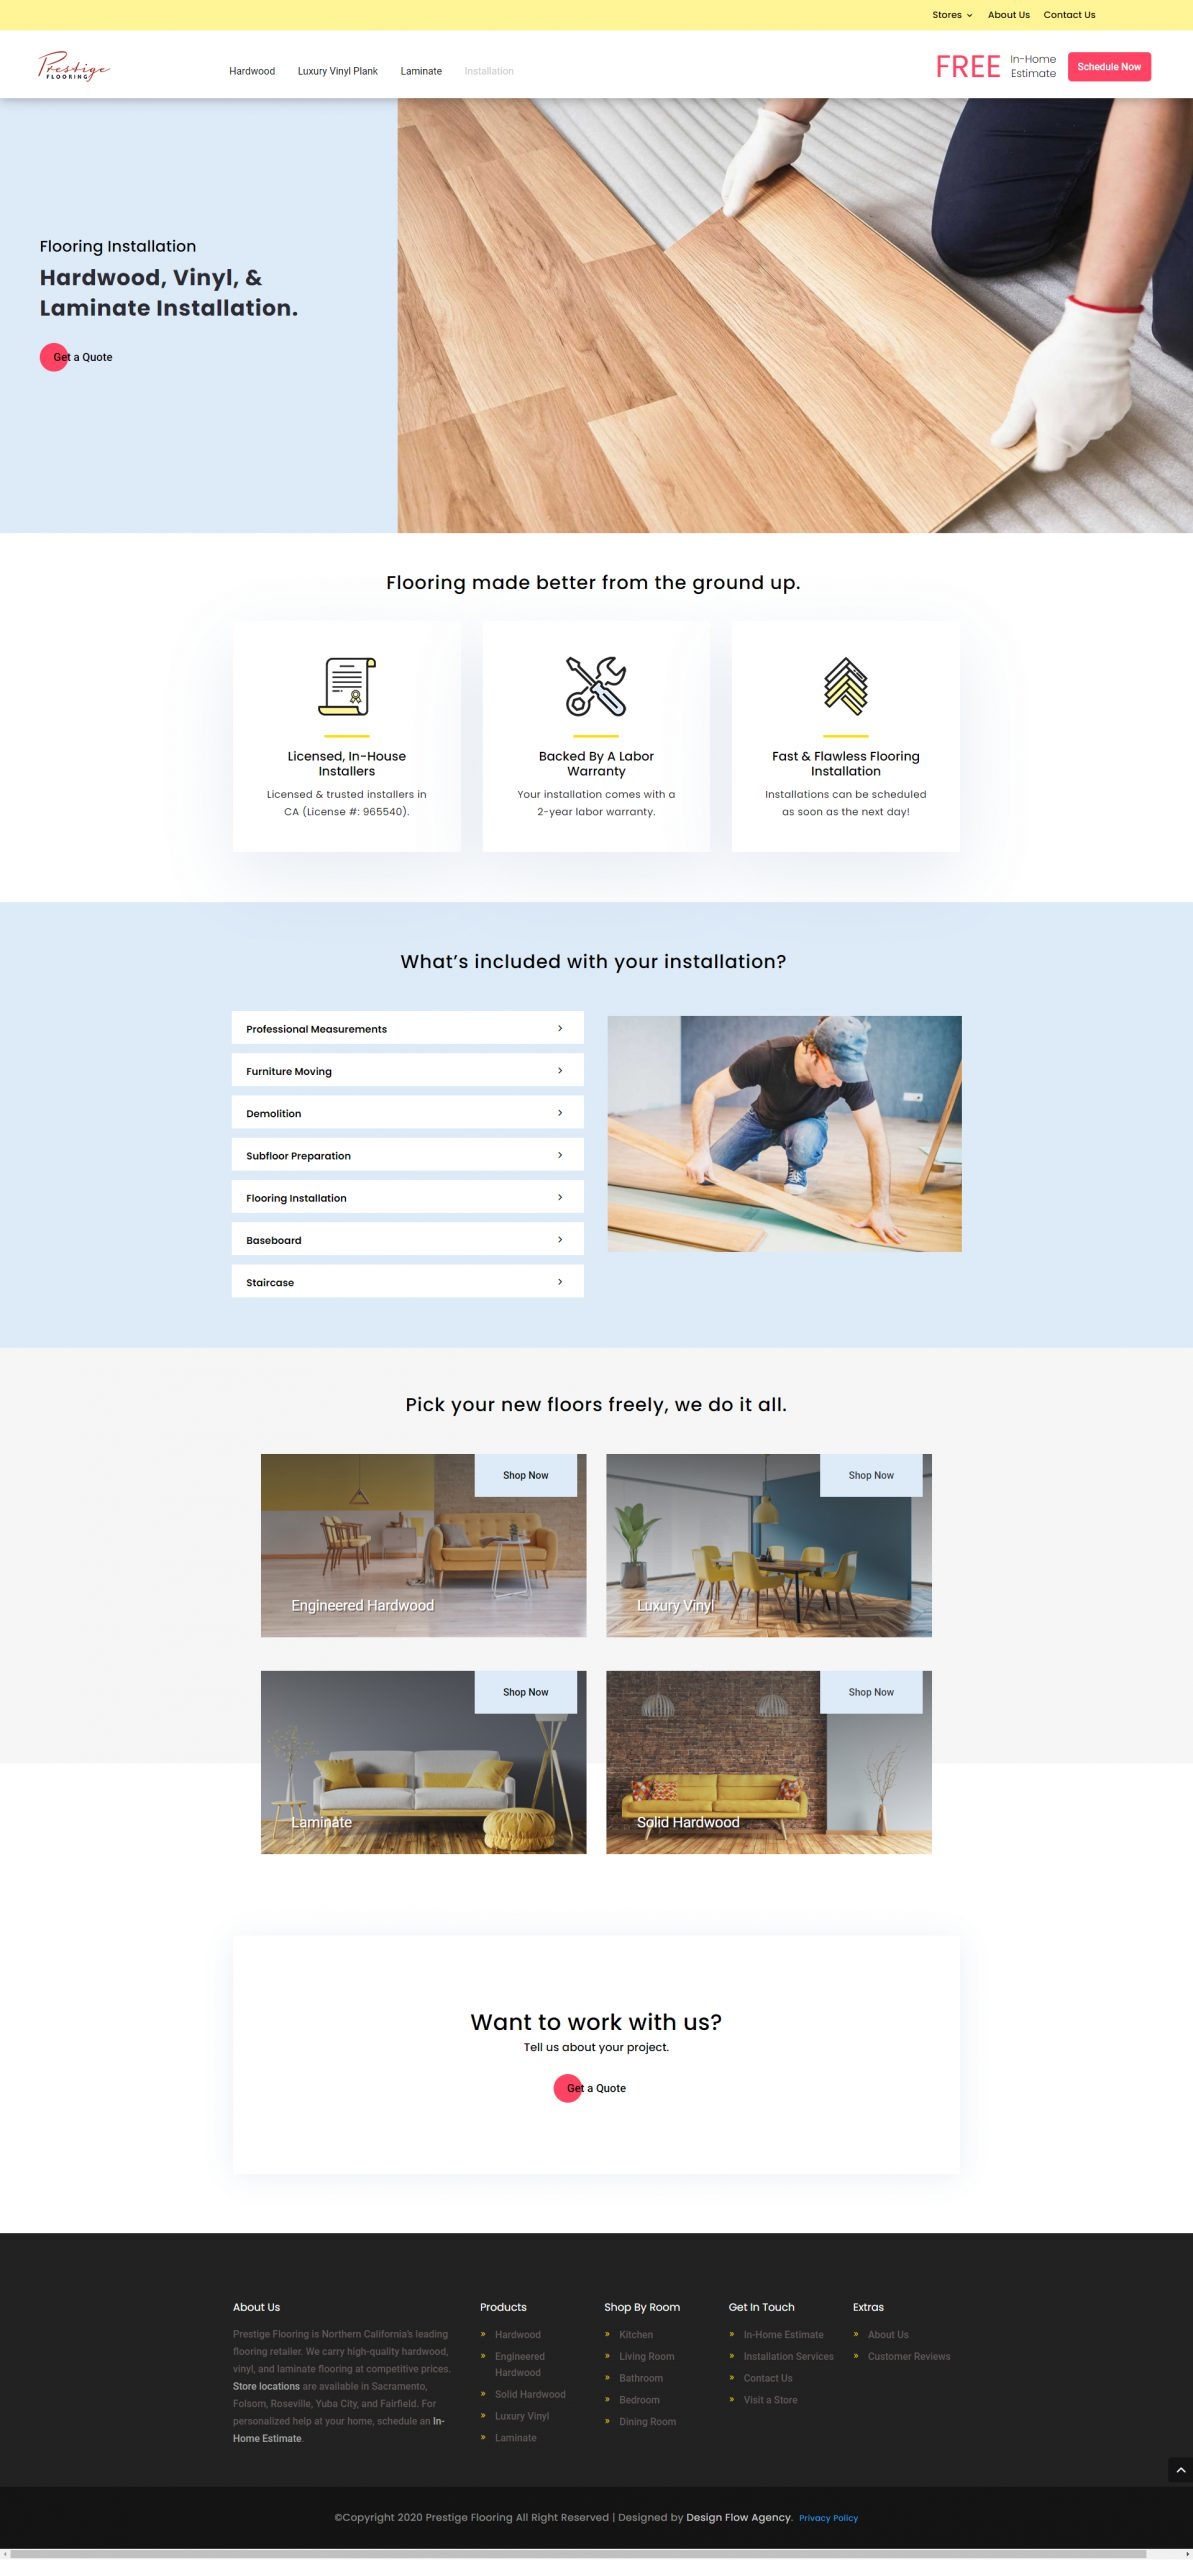 Case study: a modern web page design for a flooring installation services.